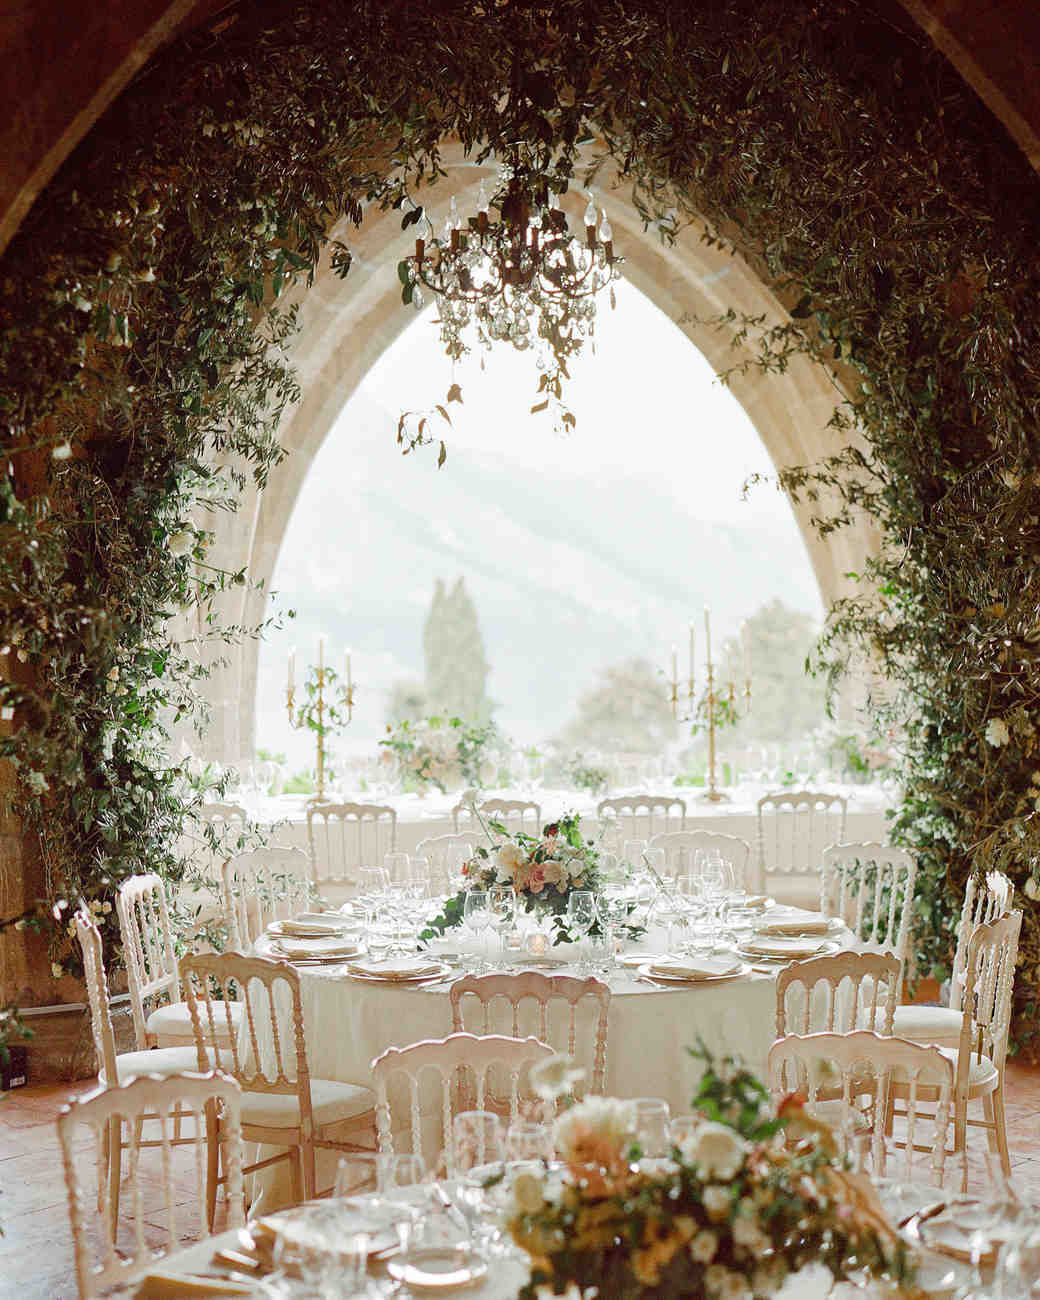 lisa greg italy wedding reception table chairs window view arch